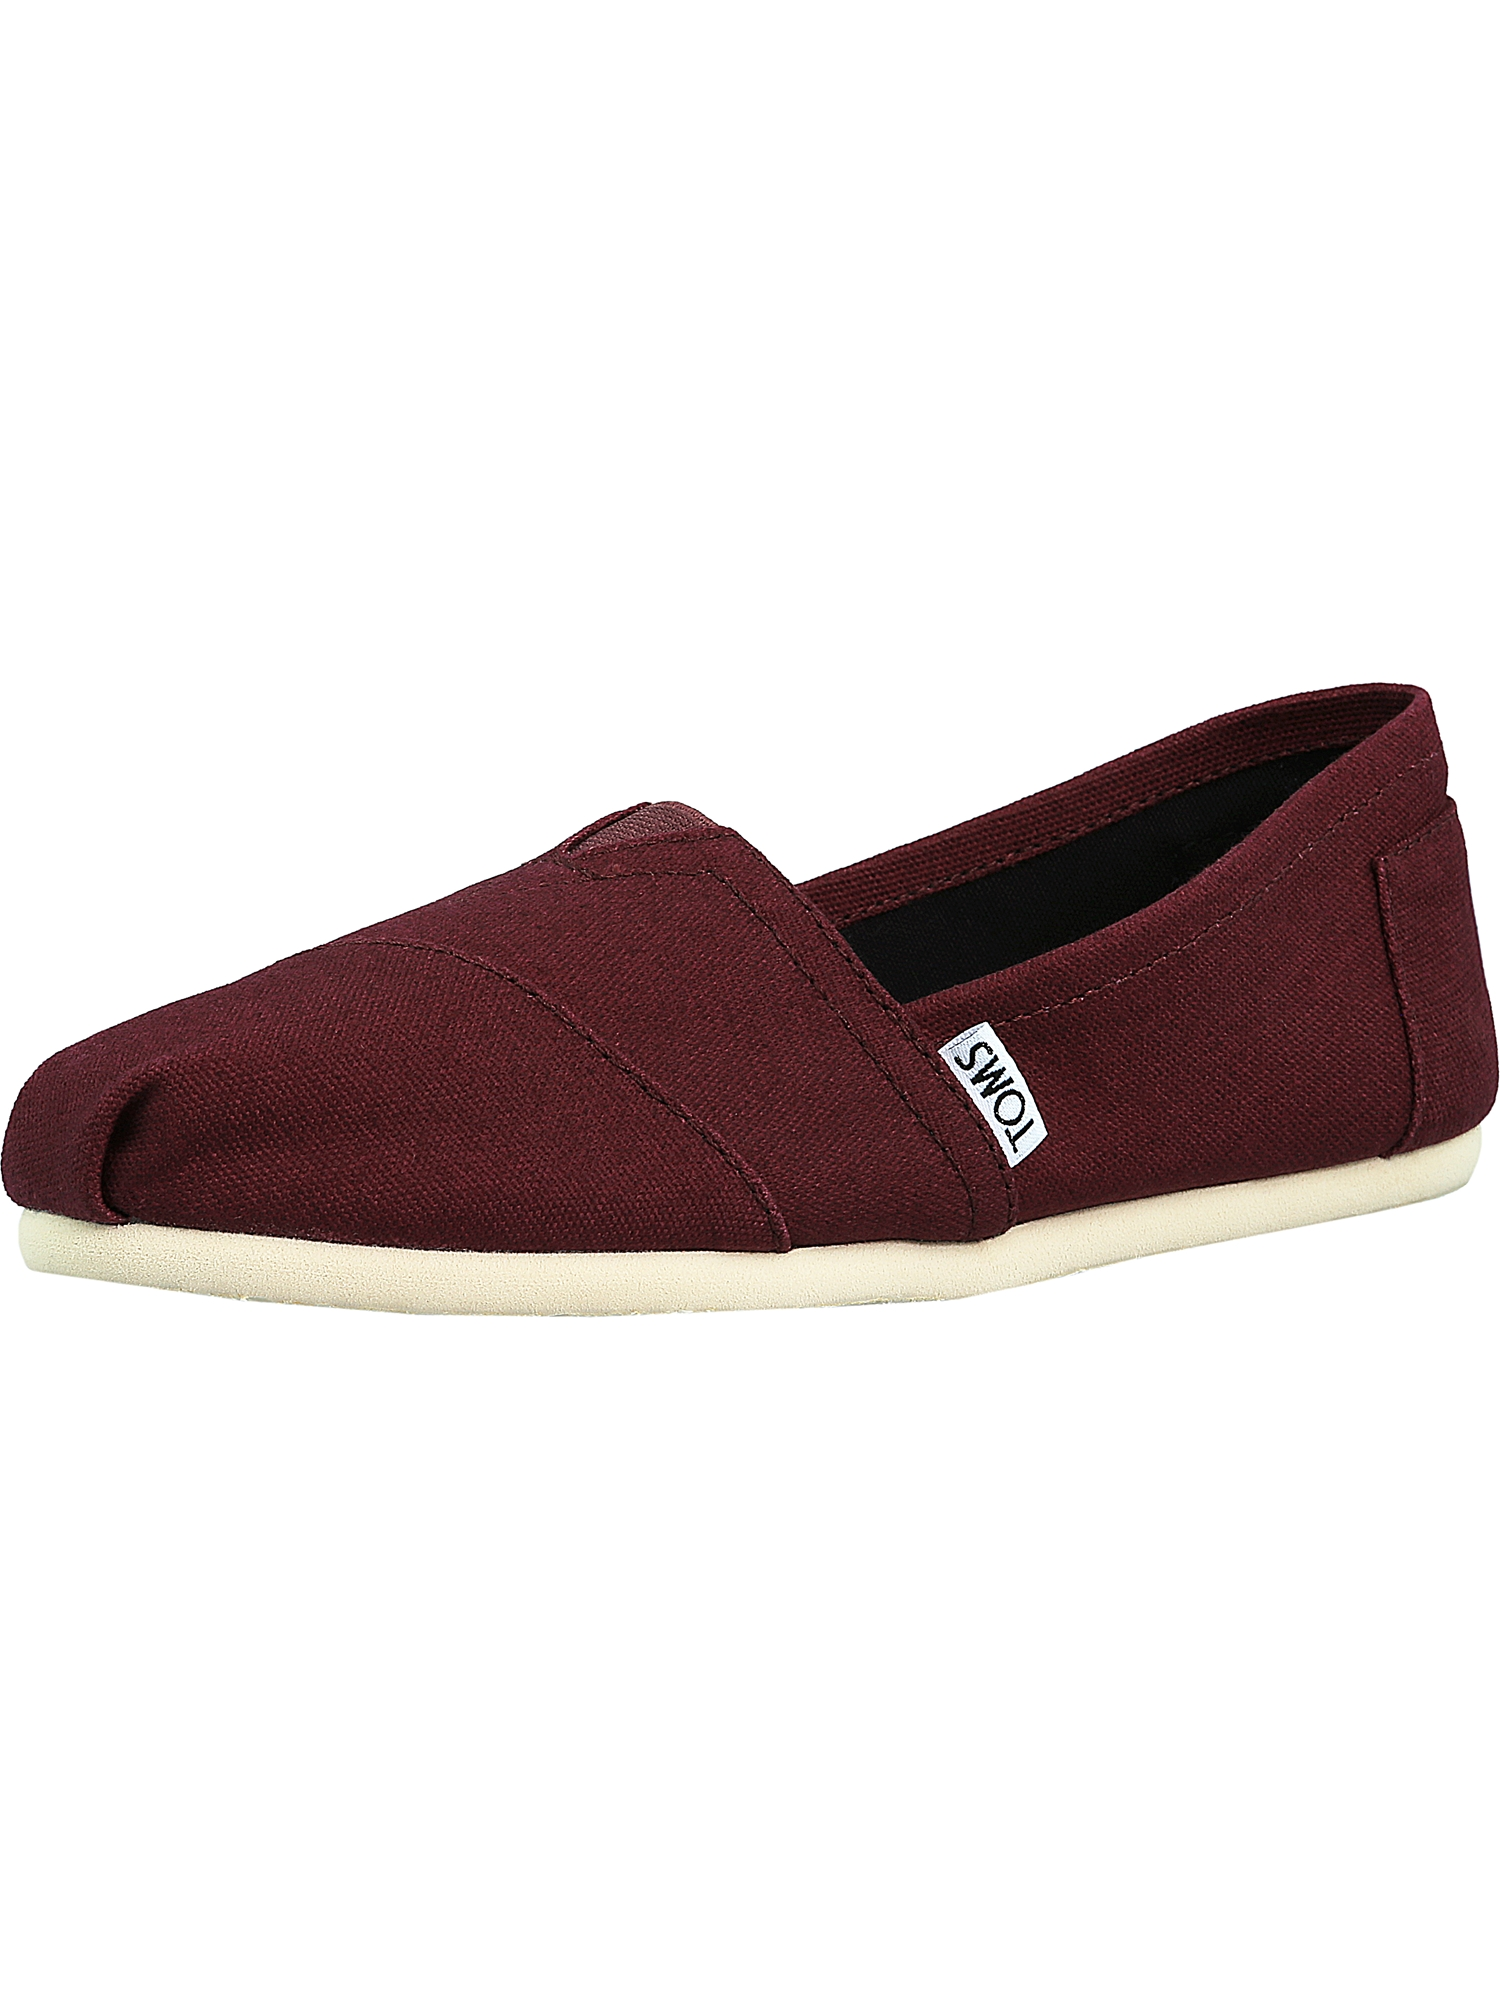 FUz6IyrDRg Girl's Classic Canvas Red Mahogany Ankle-High Fashion Sneaker - 6.5M